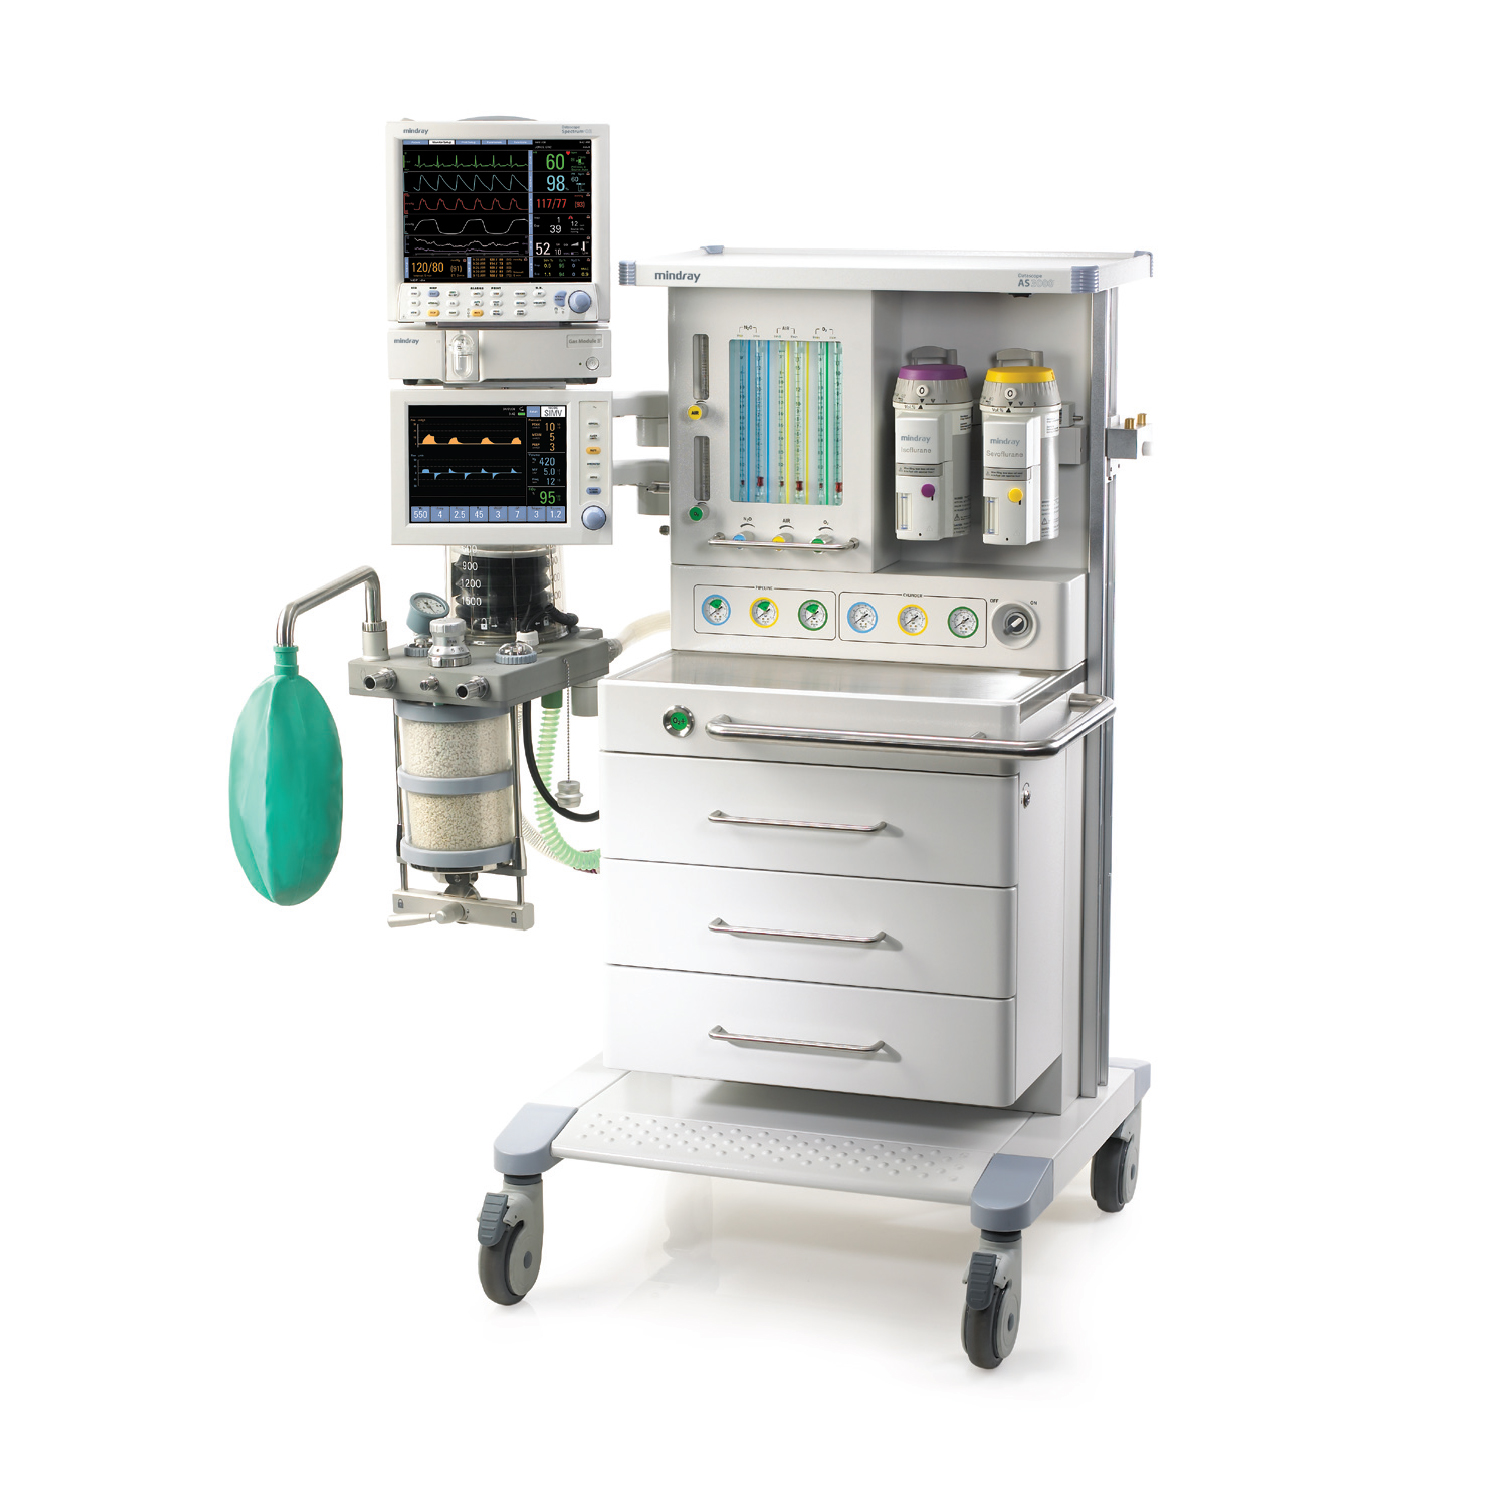 Mindray Datascope AS3000 Anesthesia Machine